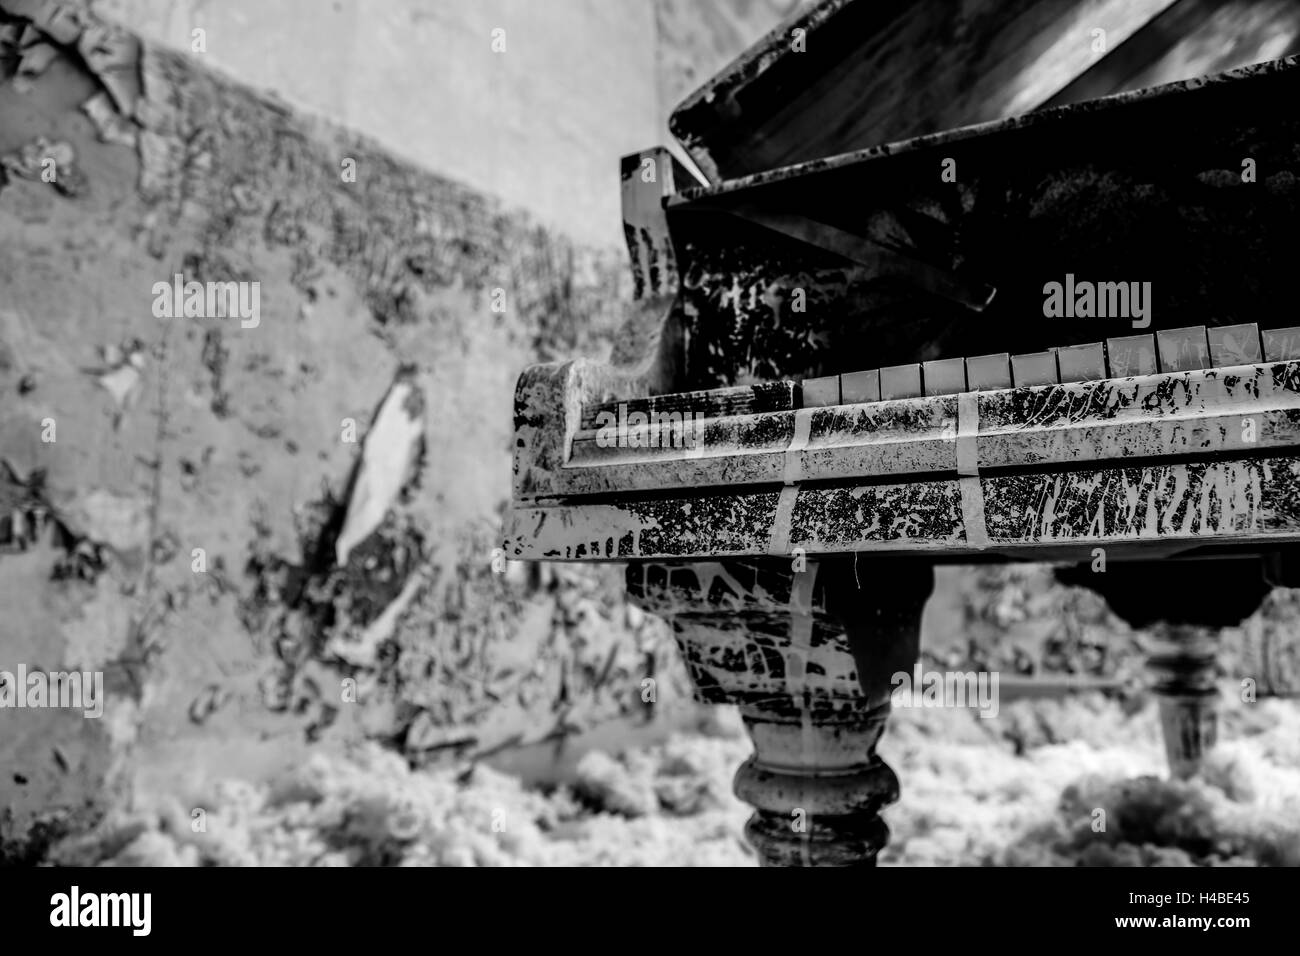 an old forgotten piano in the remedial sites of Beelitz - Stock Image